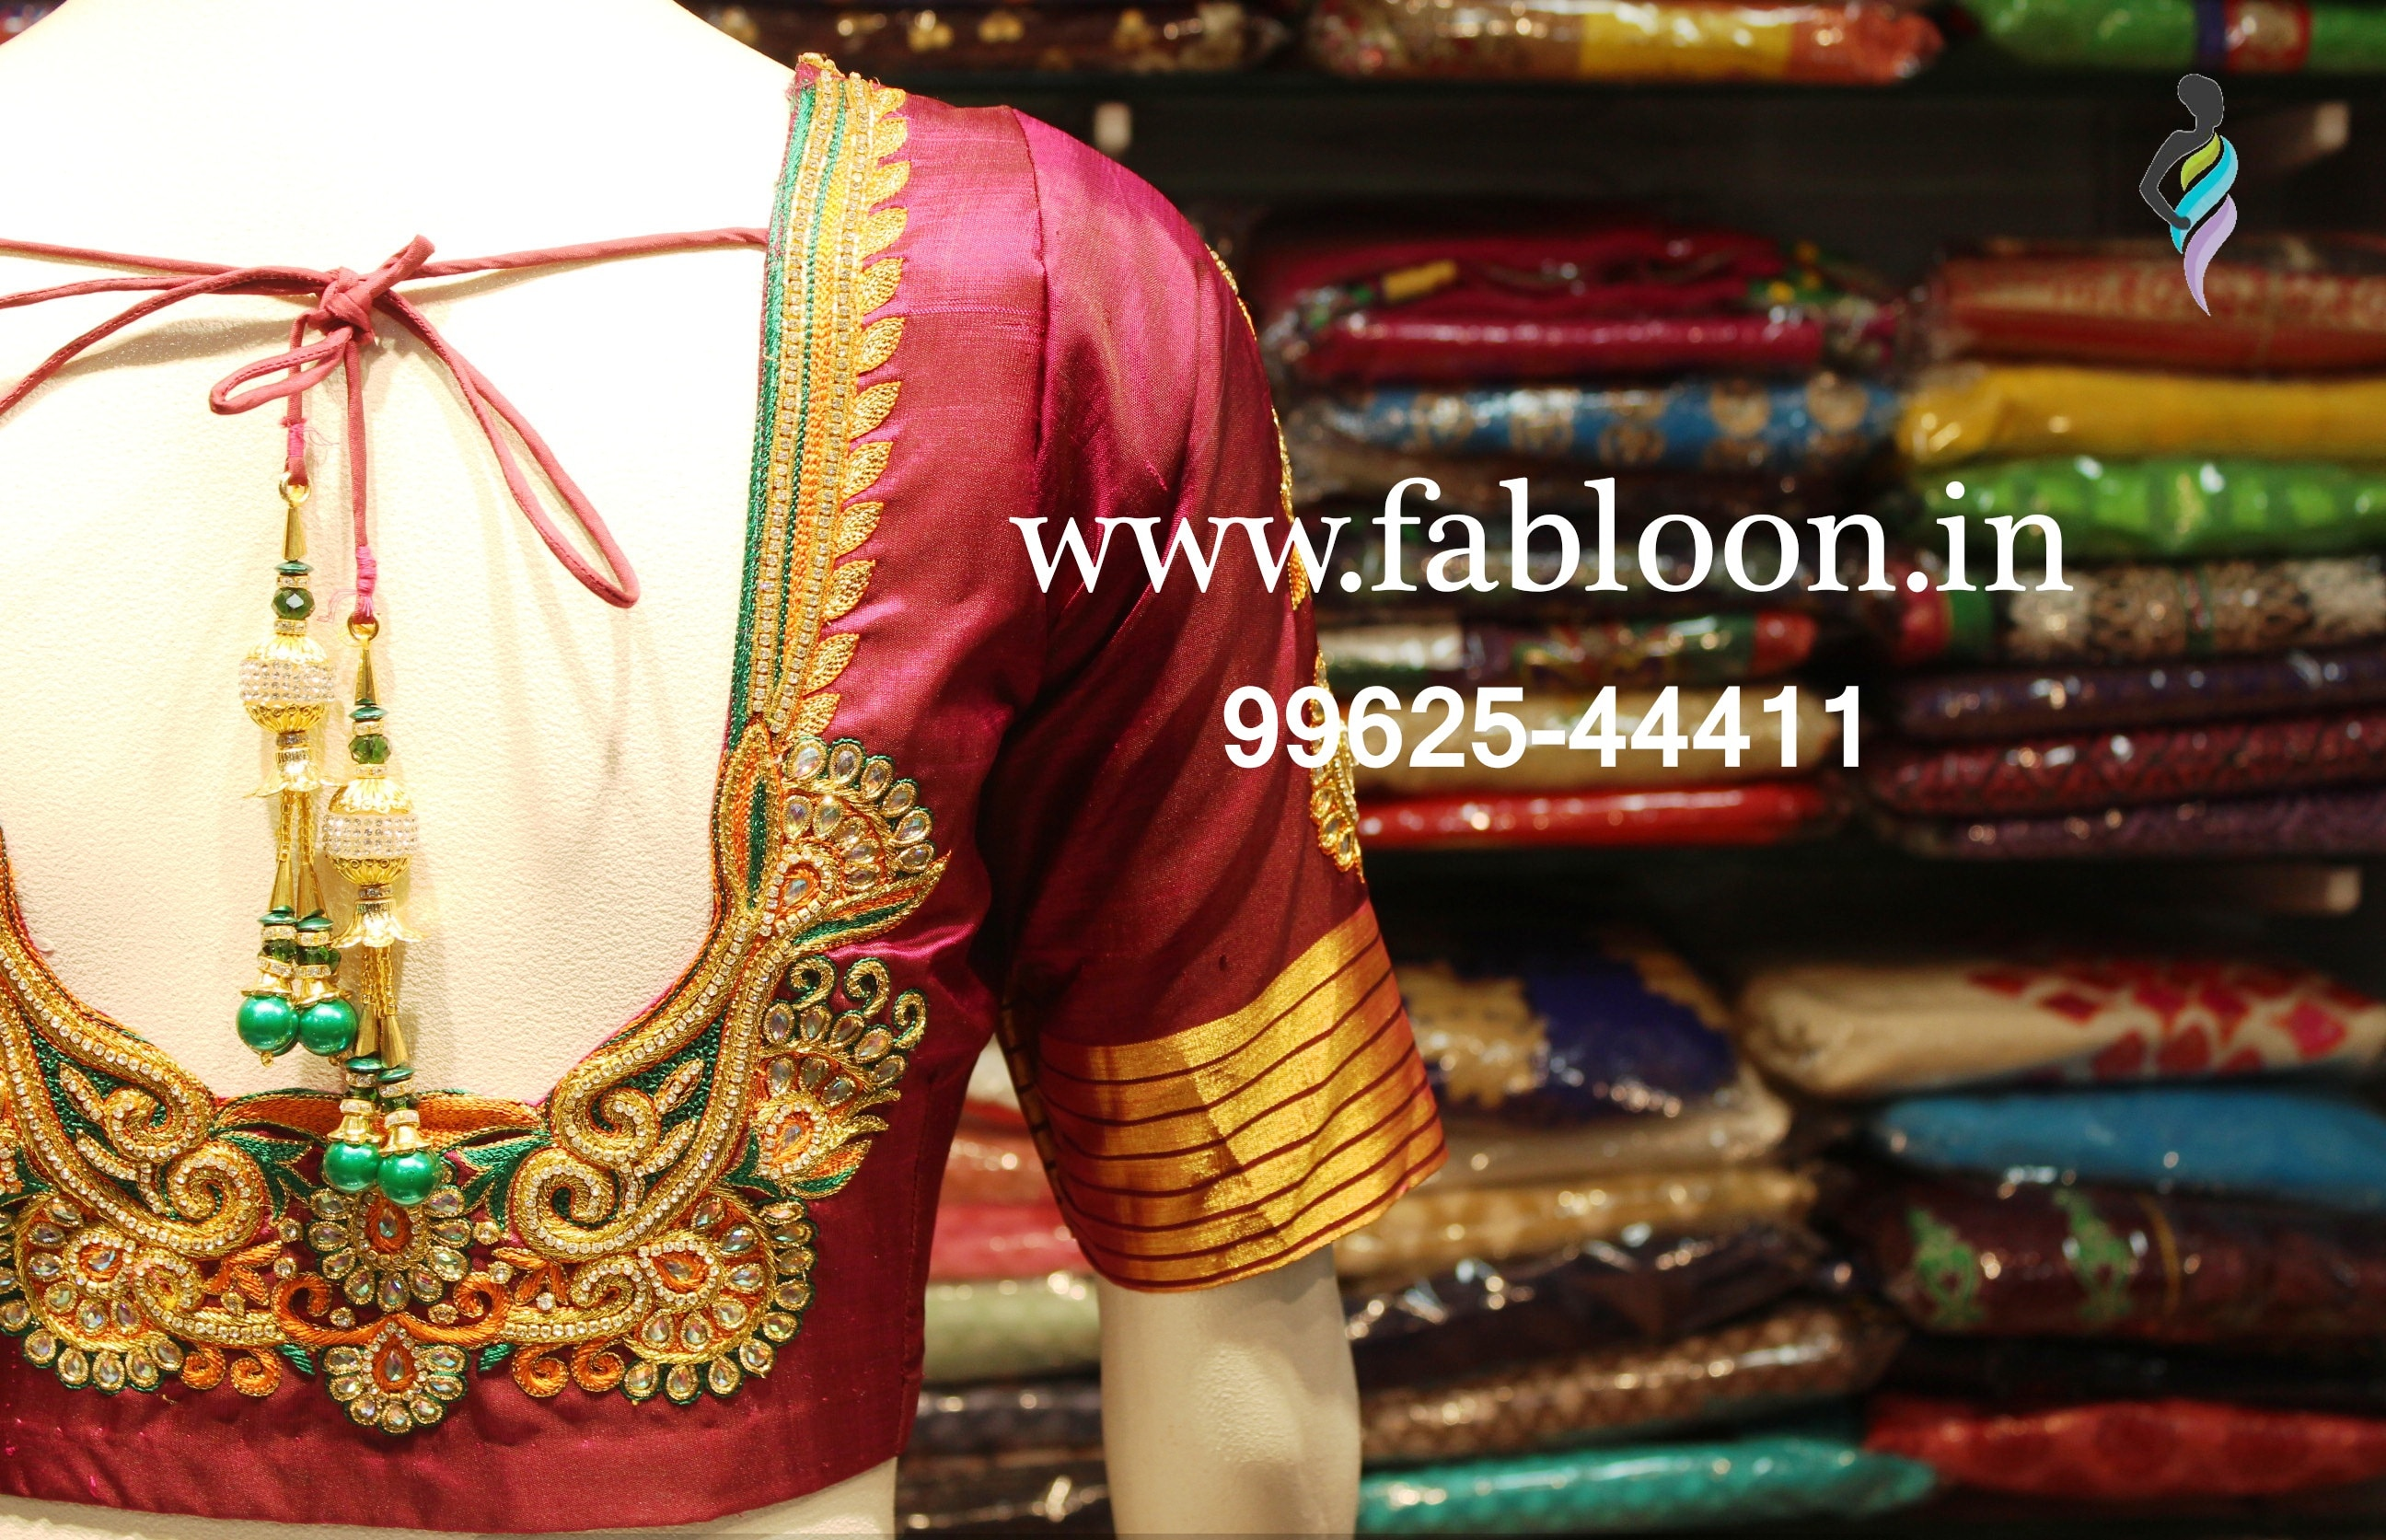 Wedding Blouse Tailors In Chennai.  Latest Blouse Designs For Wedding At Fabloon Wedding Saree Blouse Tailors In Vadapalani, Mob: +91 9962544411, 044 48644411.       With the latest and chic Wedding Blouse Designs near Vadapalani, complete your desi look on your special occasion.   Providing an array of options, you could choose the best suited Latest Designs On Wedding Blouses according to your taste.  Latest Blouse Designs for wedding are one of the best-sellers at Fabloon.  Also, complete your Ultra-Modern look with the right Saree and you should not fail to impress the wedding crowd.  Grab your Ideal Blouse for bride's mother as well. Click watch for more Updates.